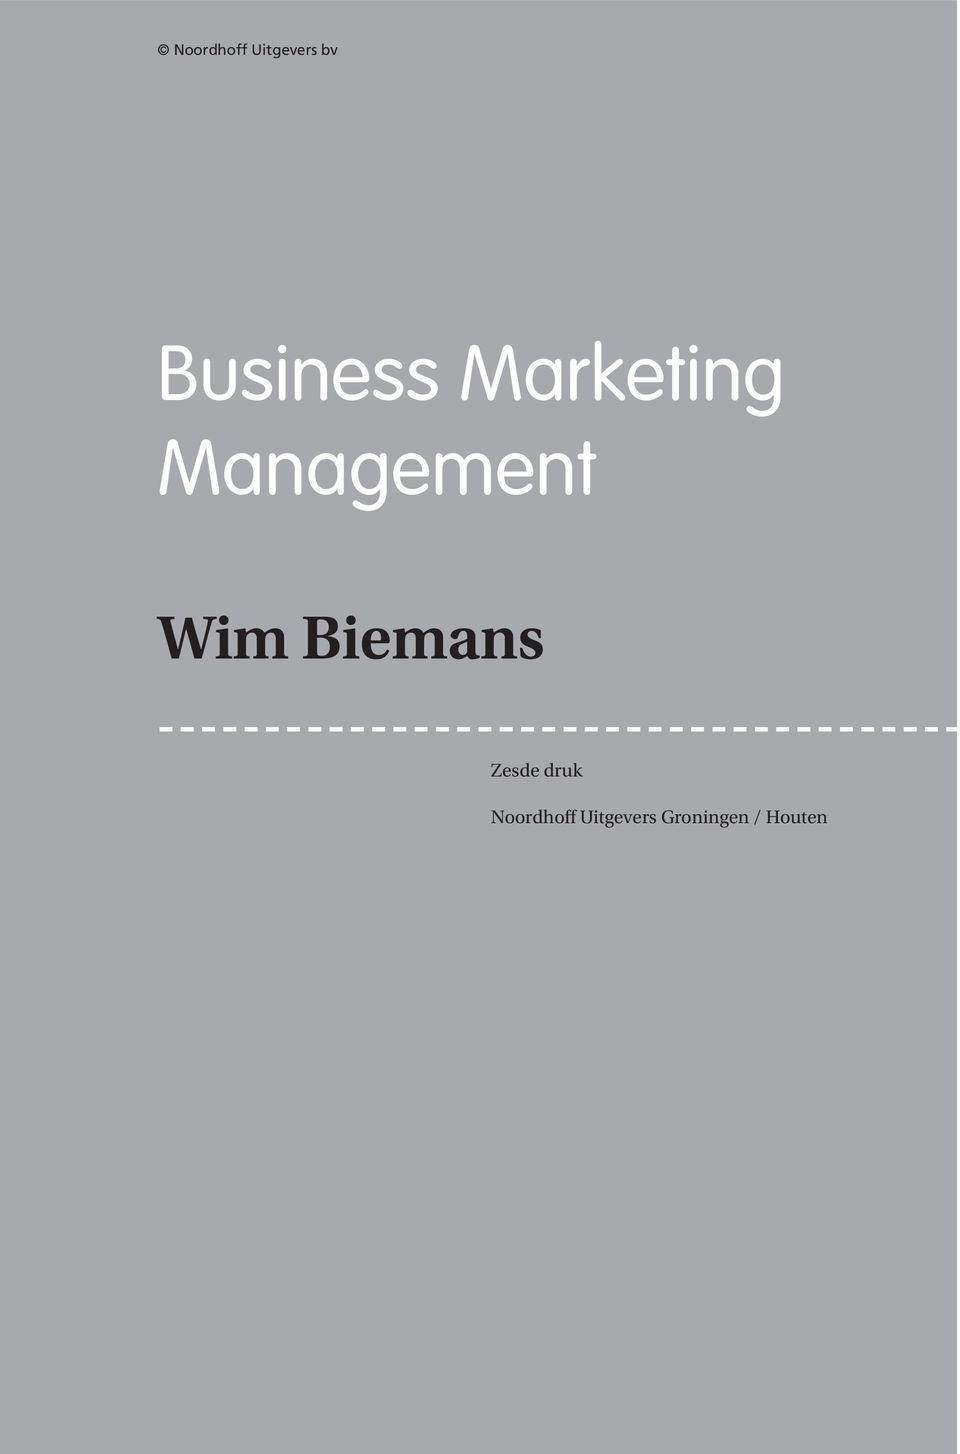 Management Wim Biemans Zesde